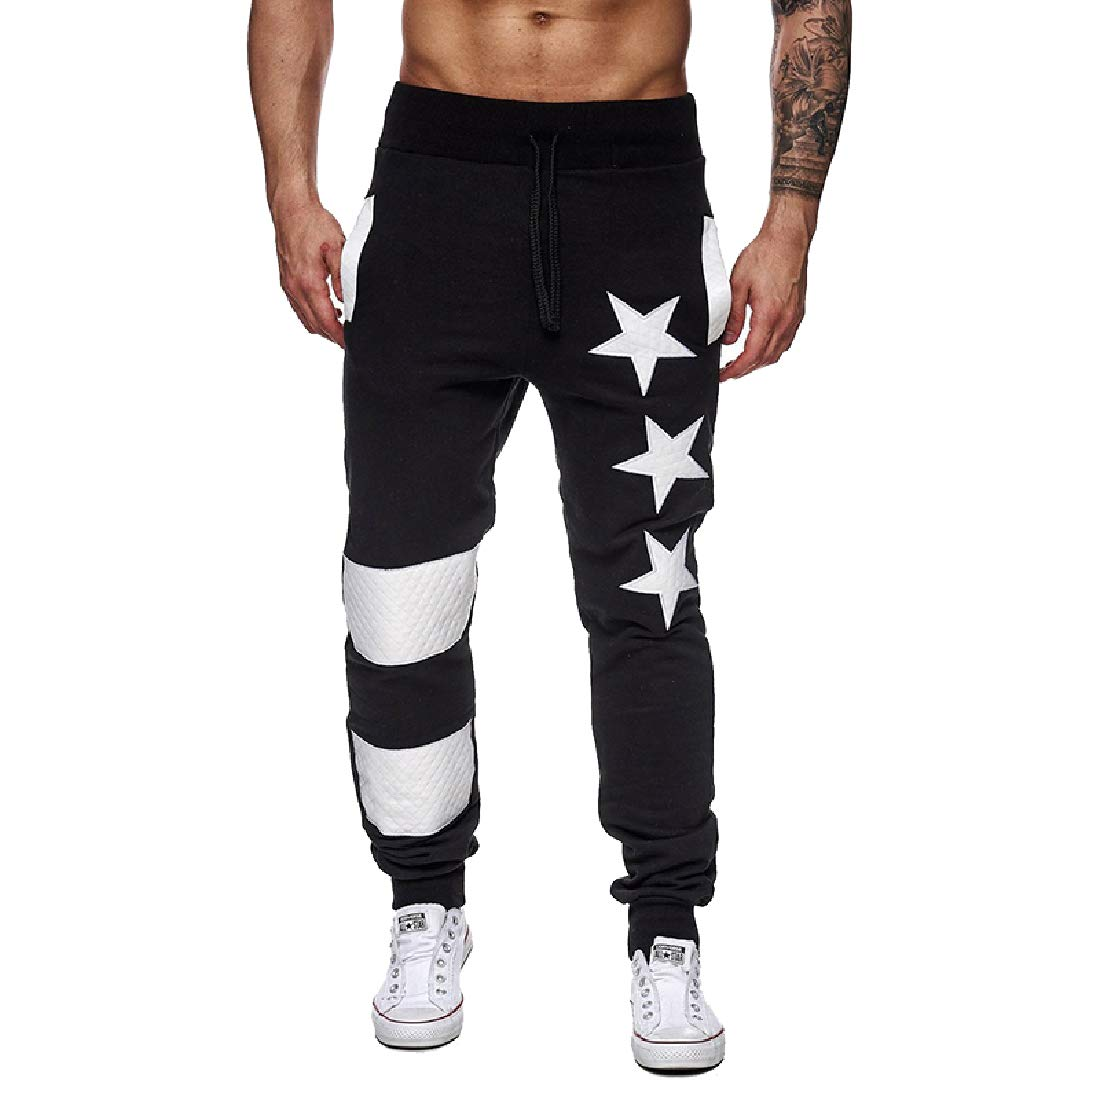 Winwinus Mens Relaxed-Fit Fashion Stripe Star Printed Sports Training Pant